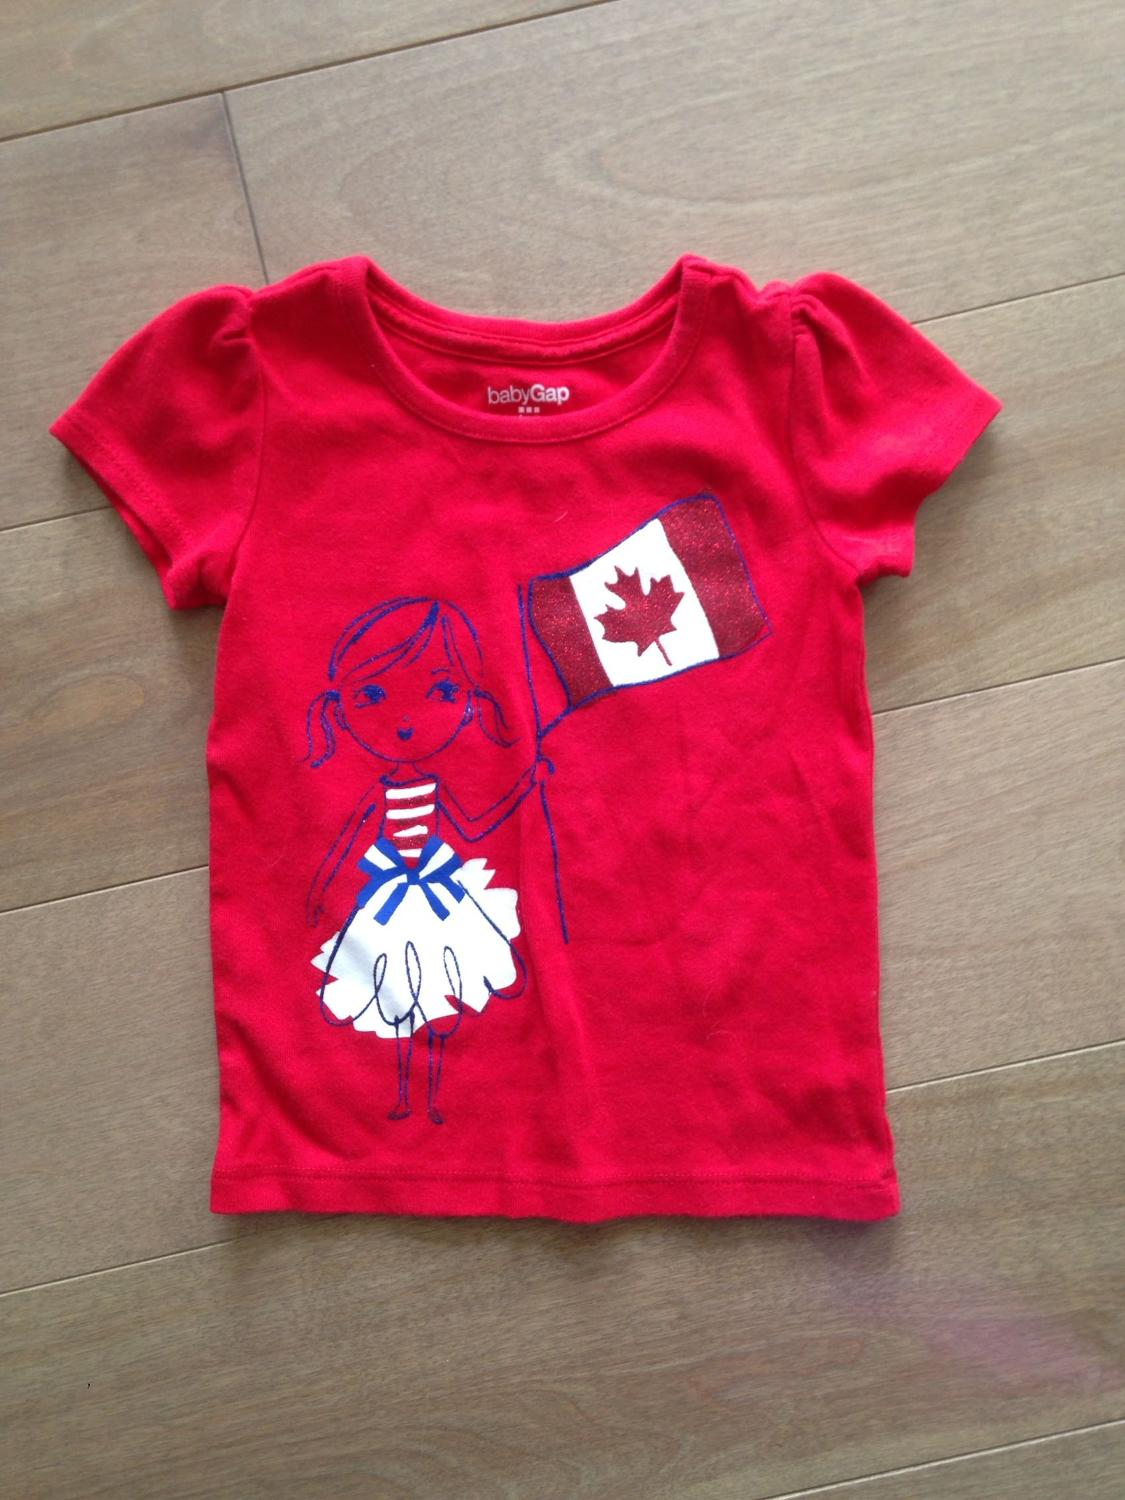 Find Baby Gap clothes from a vast selection of Baby and Toddler Clothing and Accessories. Get great deals on eBay!